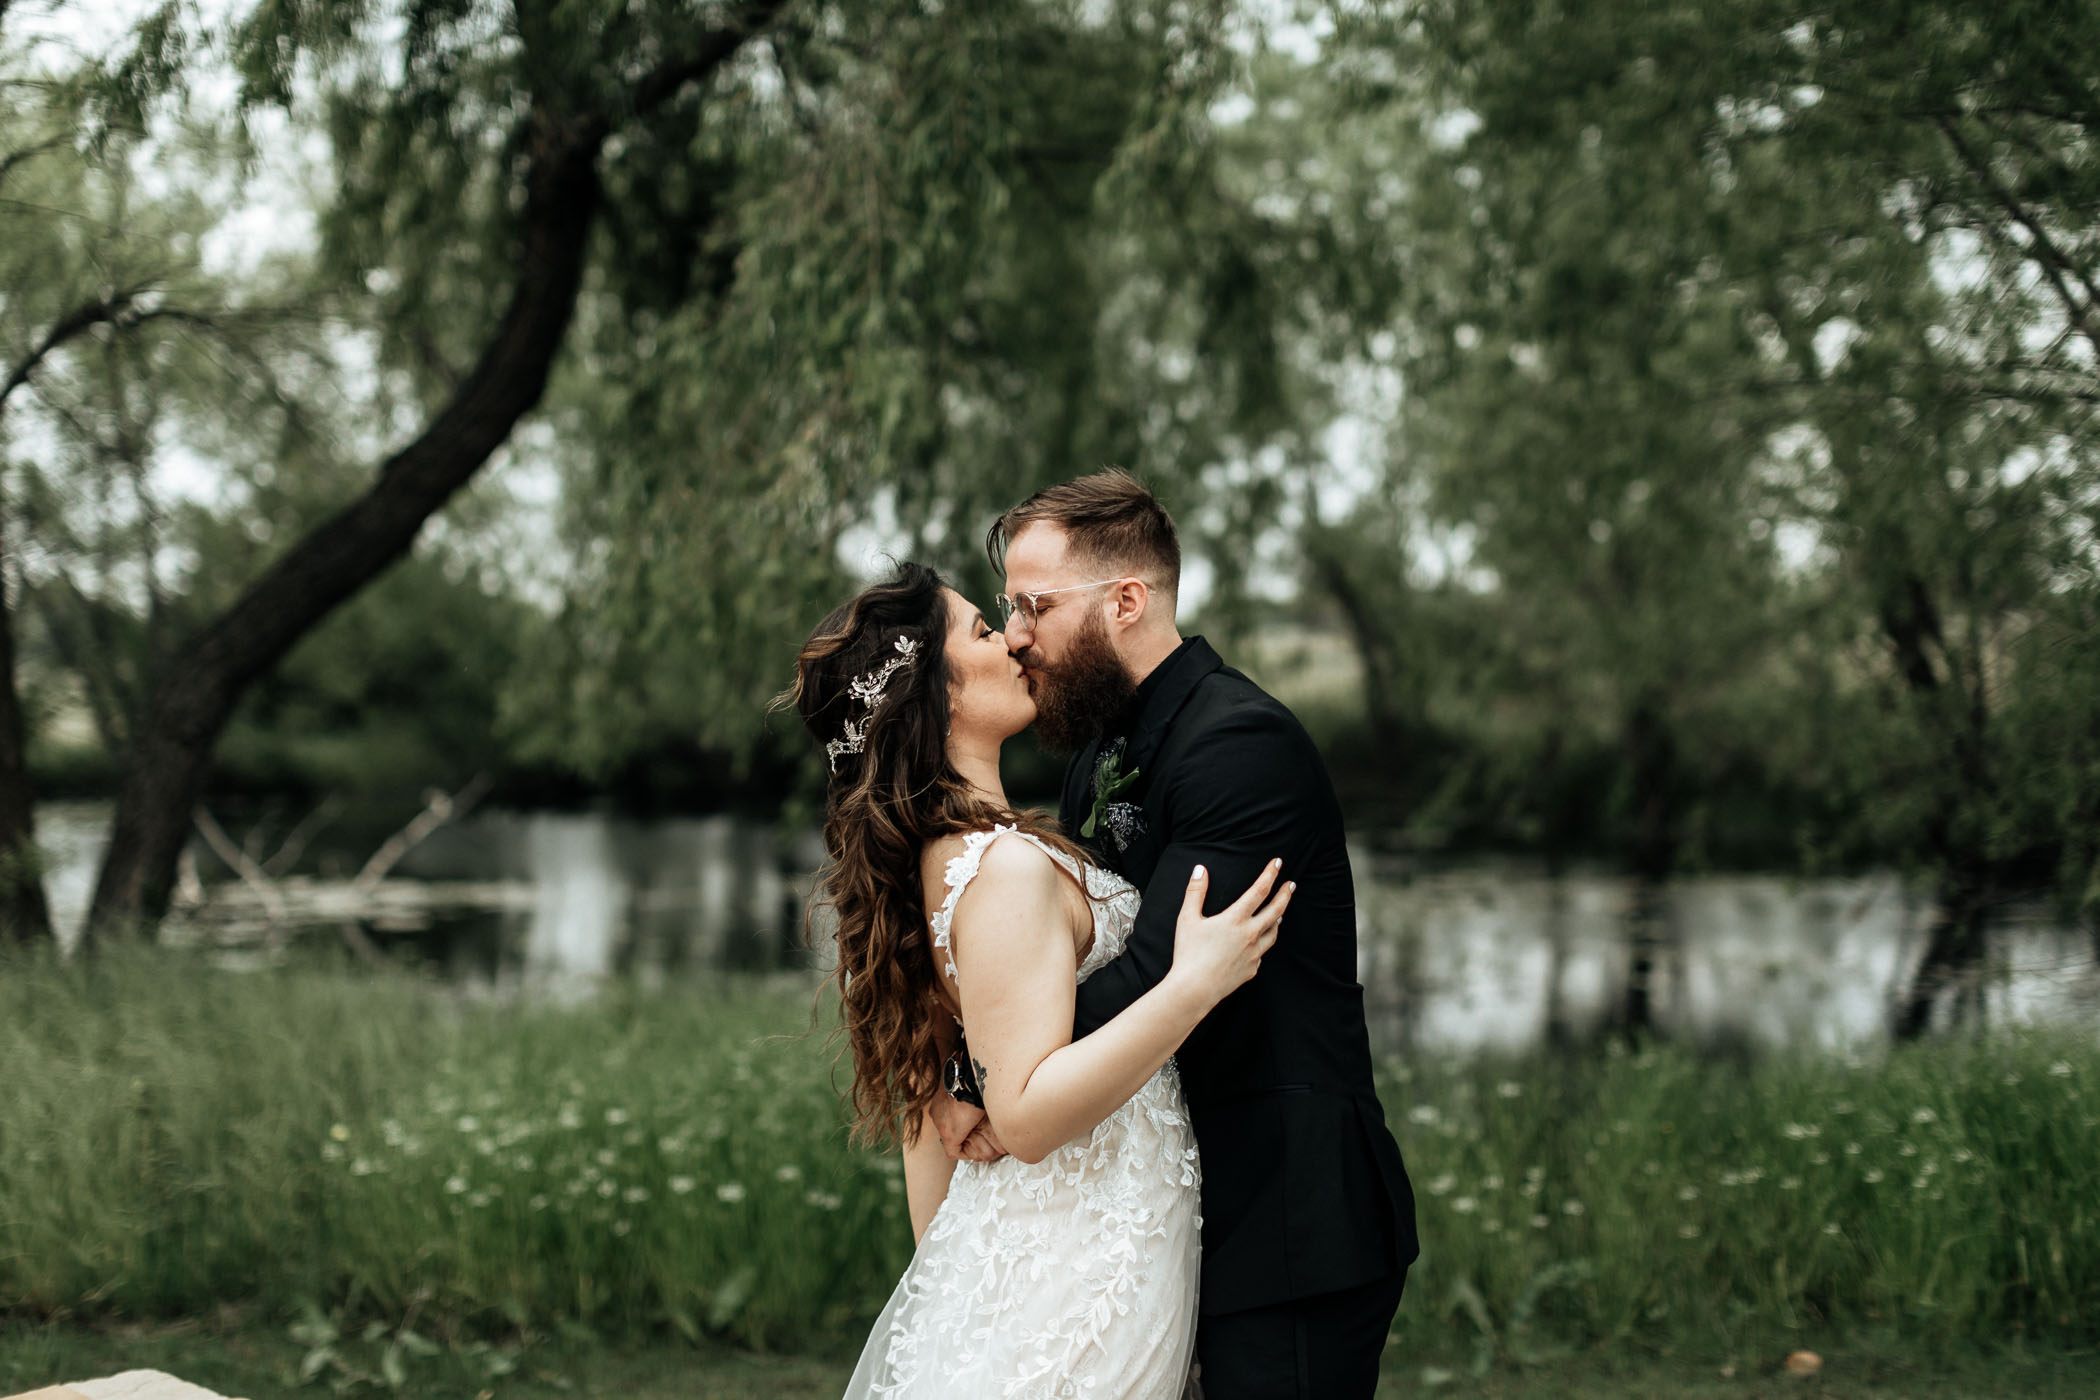 Bride and groom kissing for wedding portrait in DFW